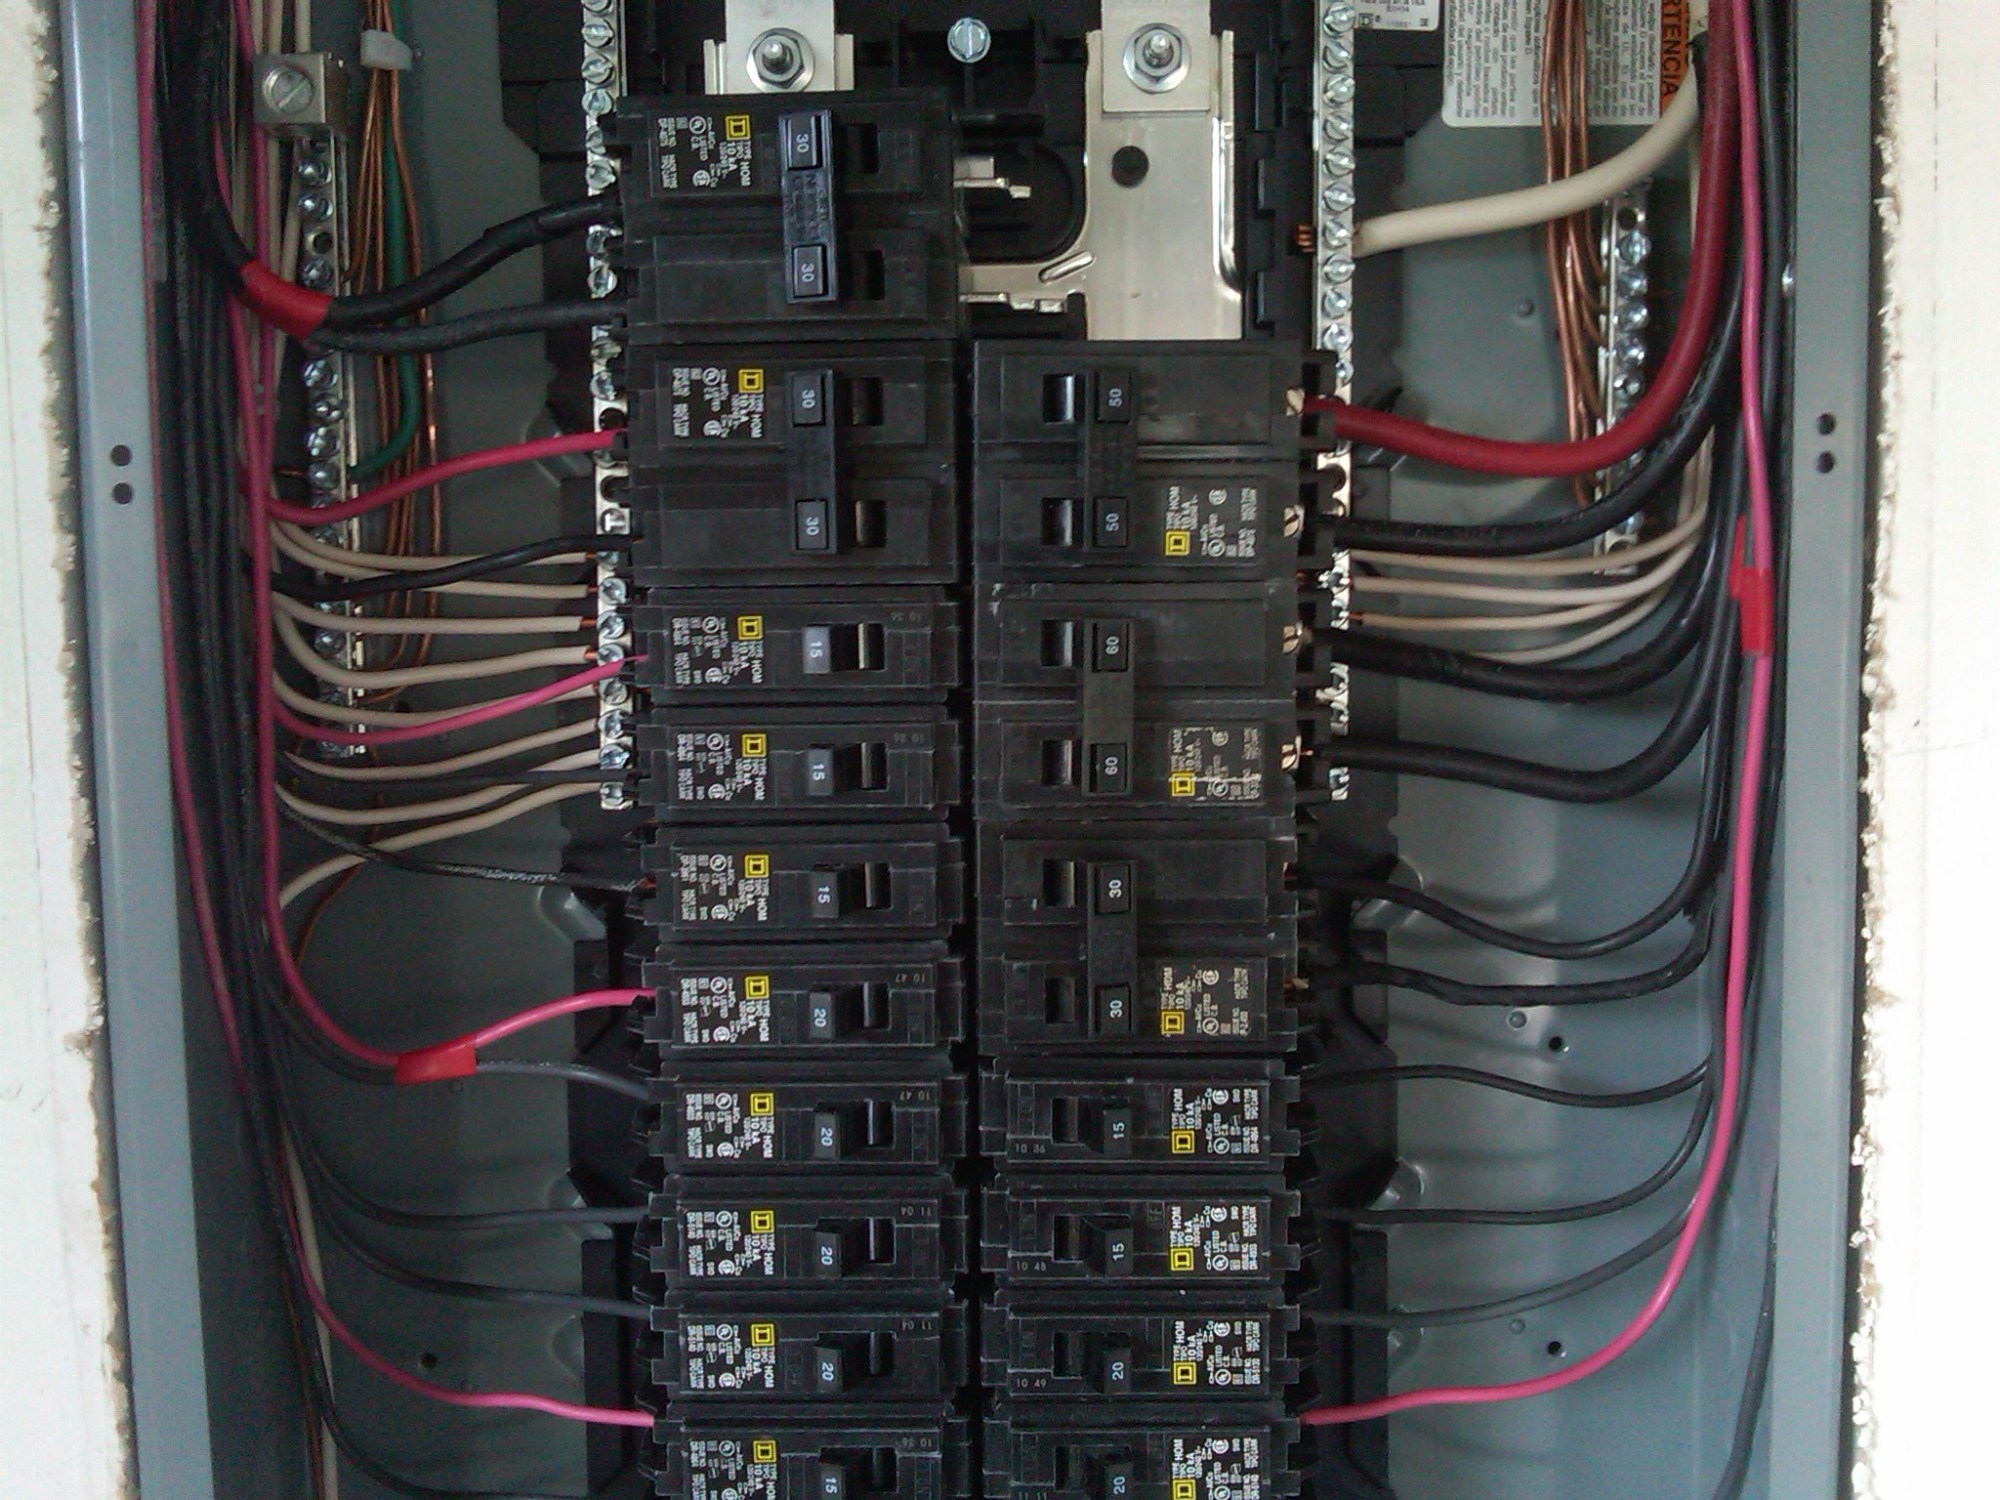 hight resolution of we will explain what should be done and quote a price for repairs take the opportunity to at least have the panel checked